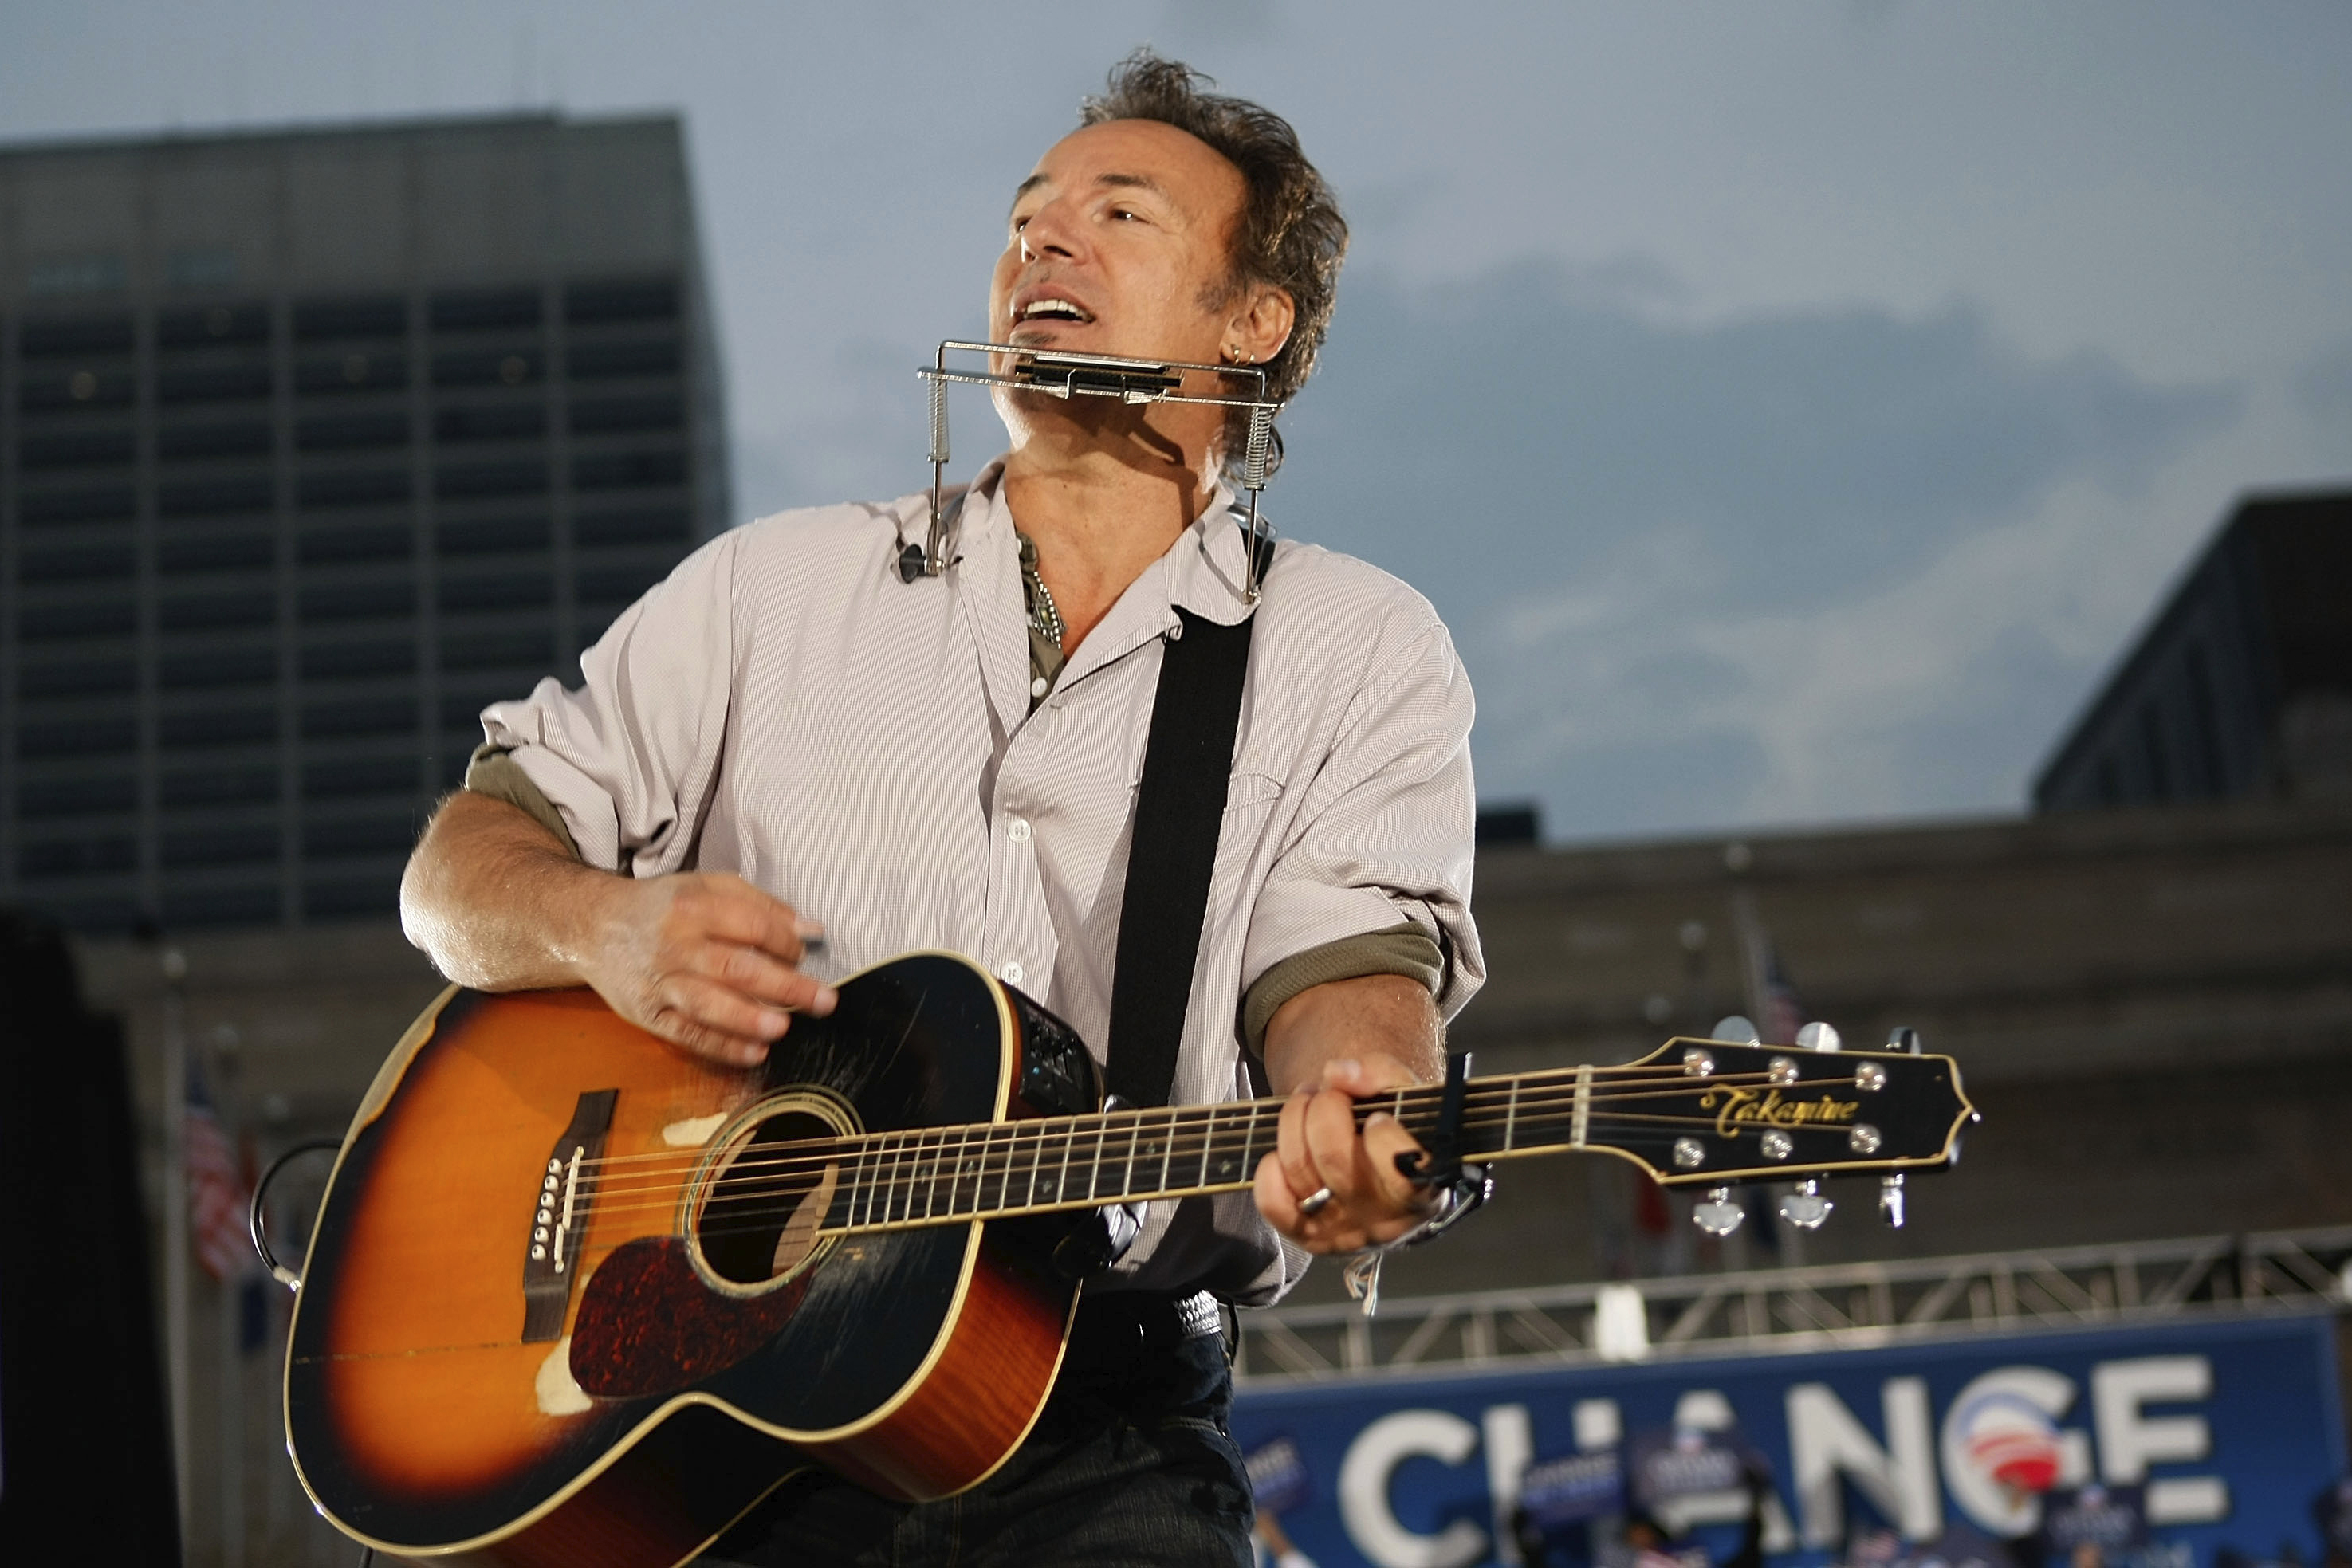 Singer Bruce Springsteen plays before Democratic presidential nominee U.S. Sen. Barack Obama (D-IL) takes the stage during a campaign rally at the Cleveland Mall November 2, 2008 in Cleveland, Ohio. Obama continues to campaign as Election Day begins to draw near as he runs against his Republican challenger, Sen. John McCain. (Photo by Joe Raedle/Getty Images)